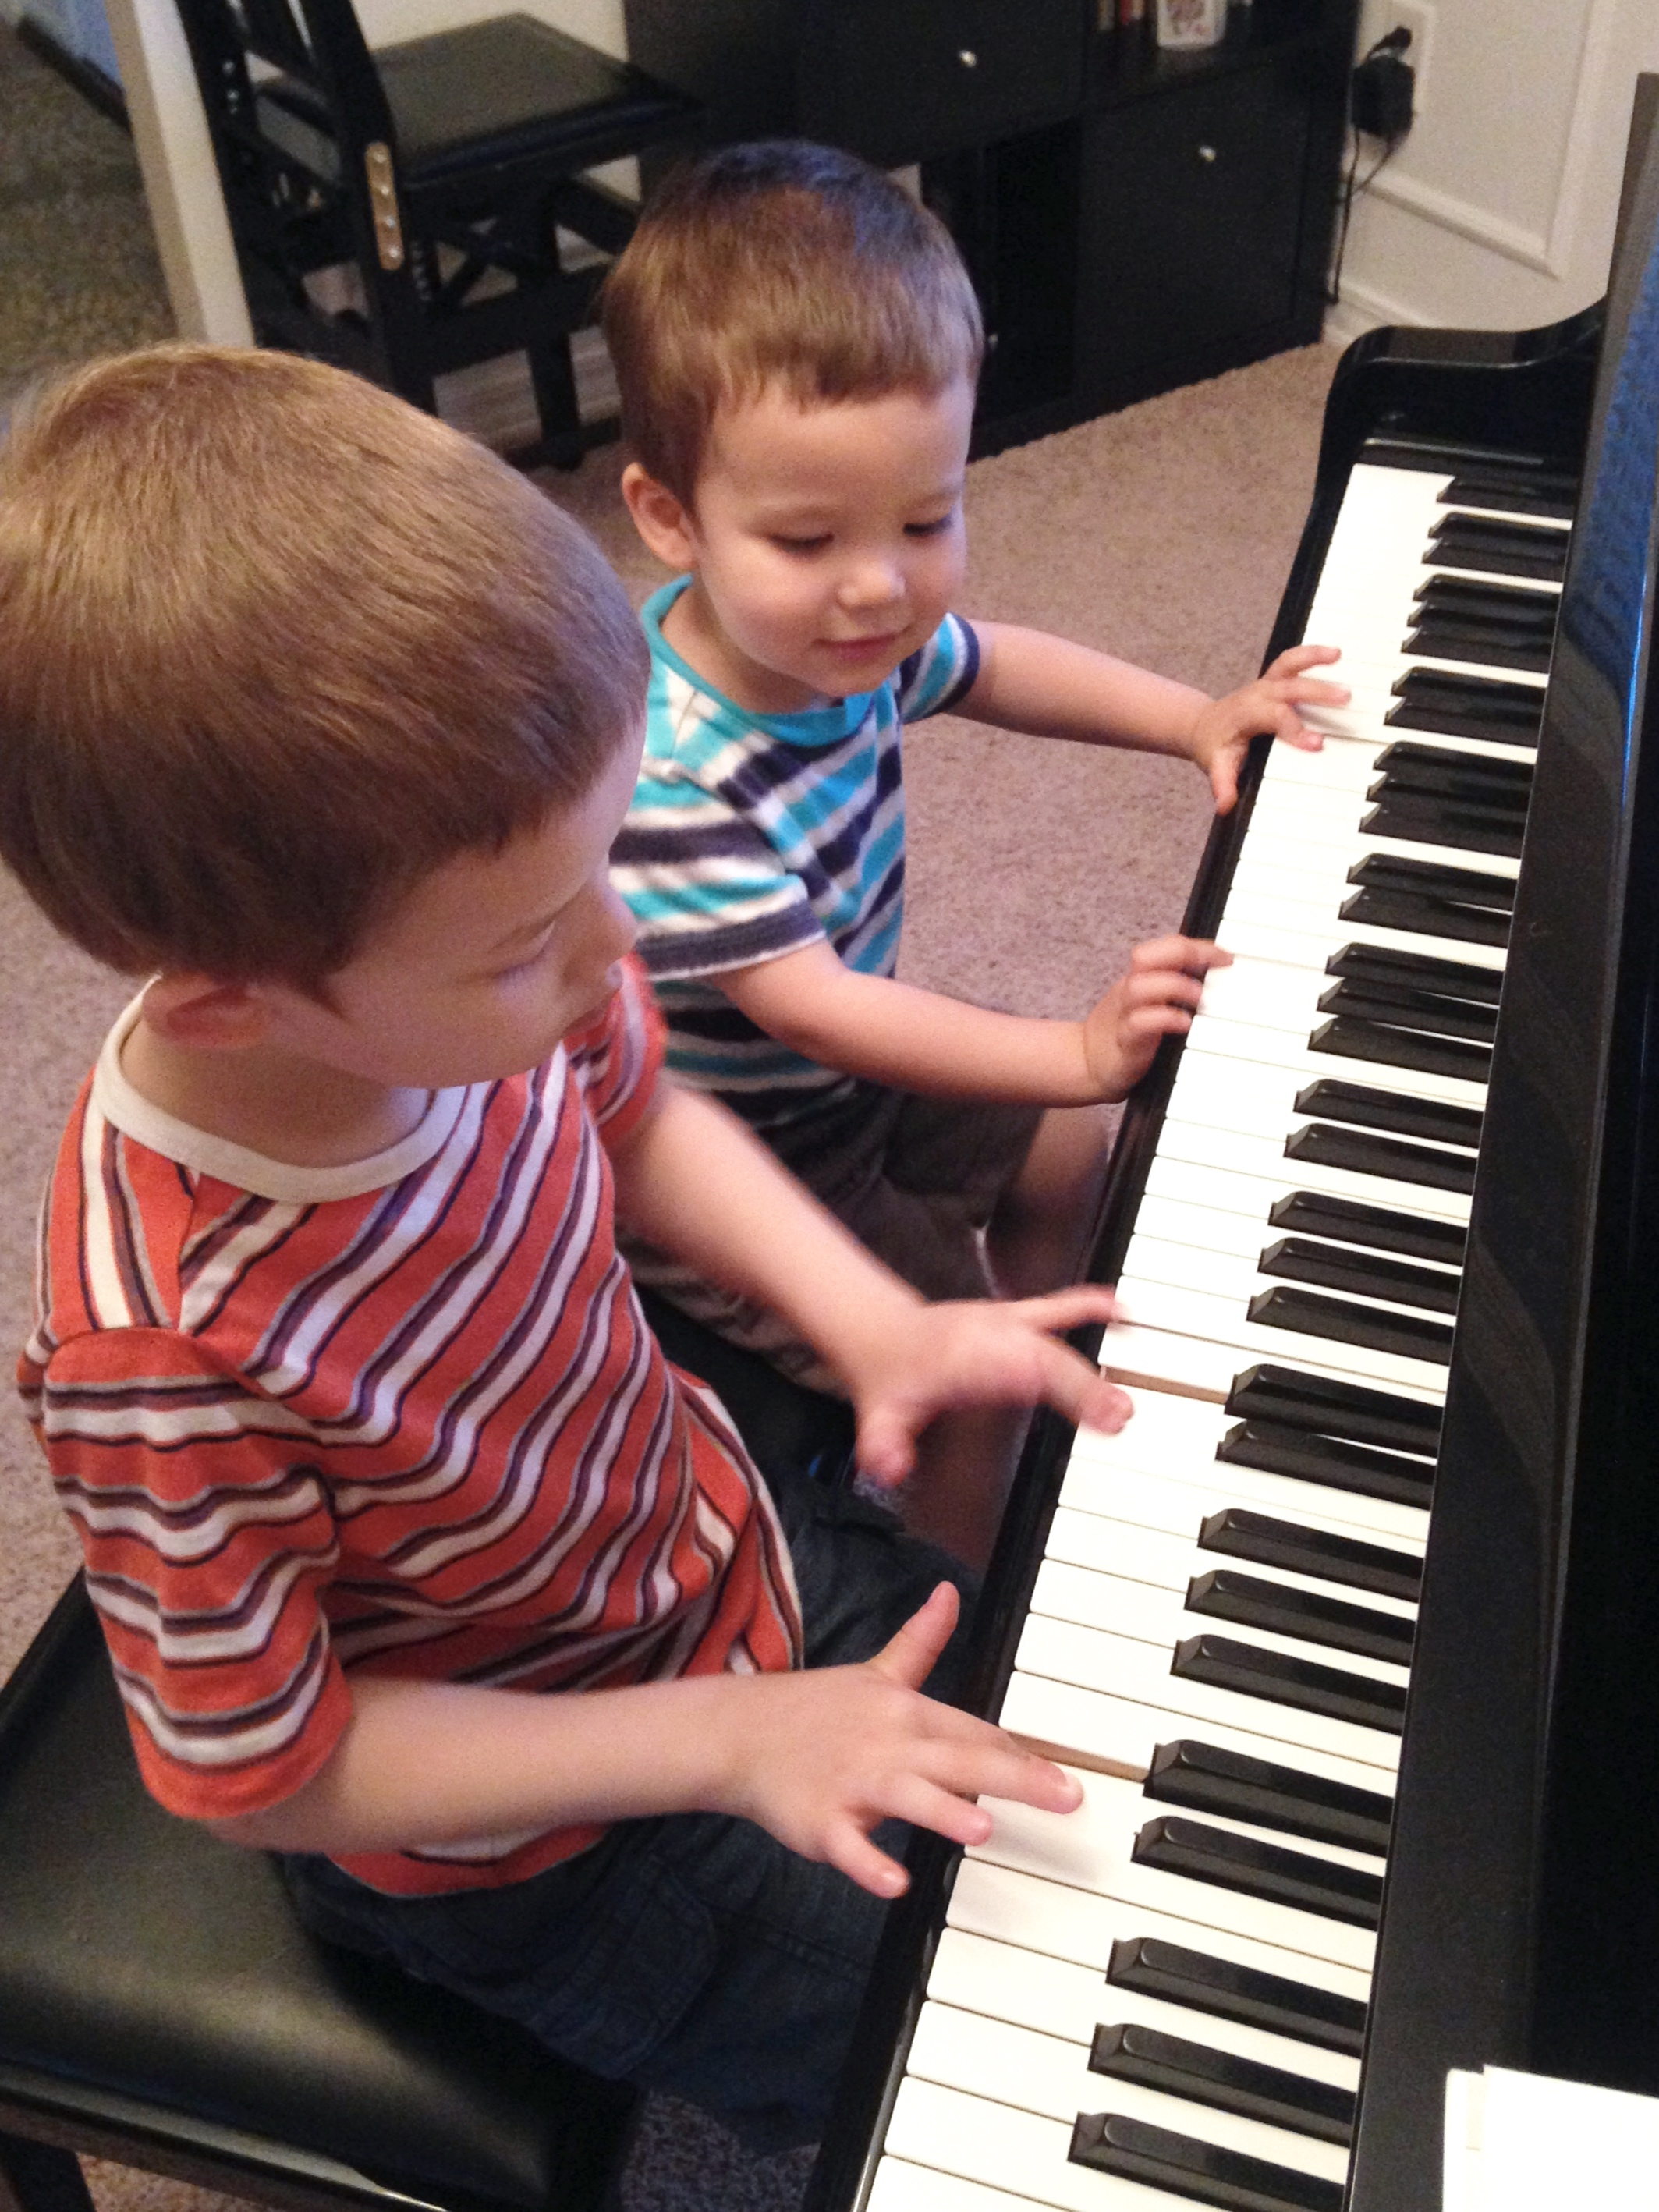 Piano Ensemble - Piano playing gets even more fun with four hands or six hands! Every month, our little pianists enjoy learning new ensemble pieces and love entertaining their family and friends. The students develop concentration and rhythmic security. The ensemble playing allows students to learn from peers as well as from teacher.